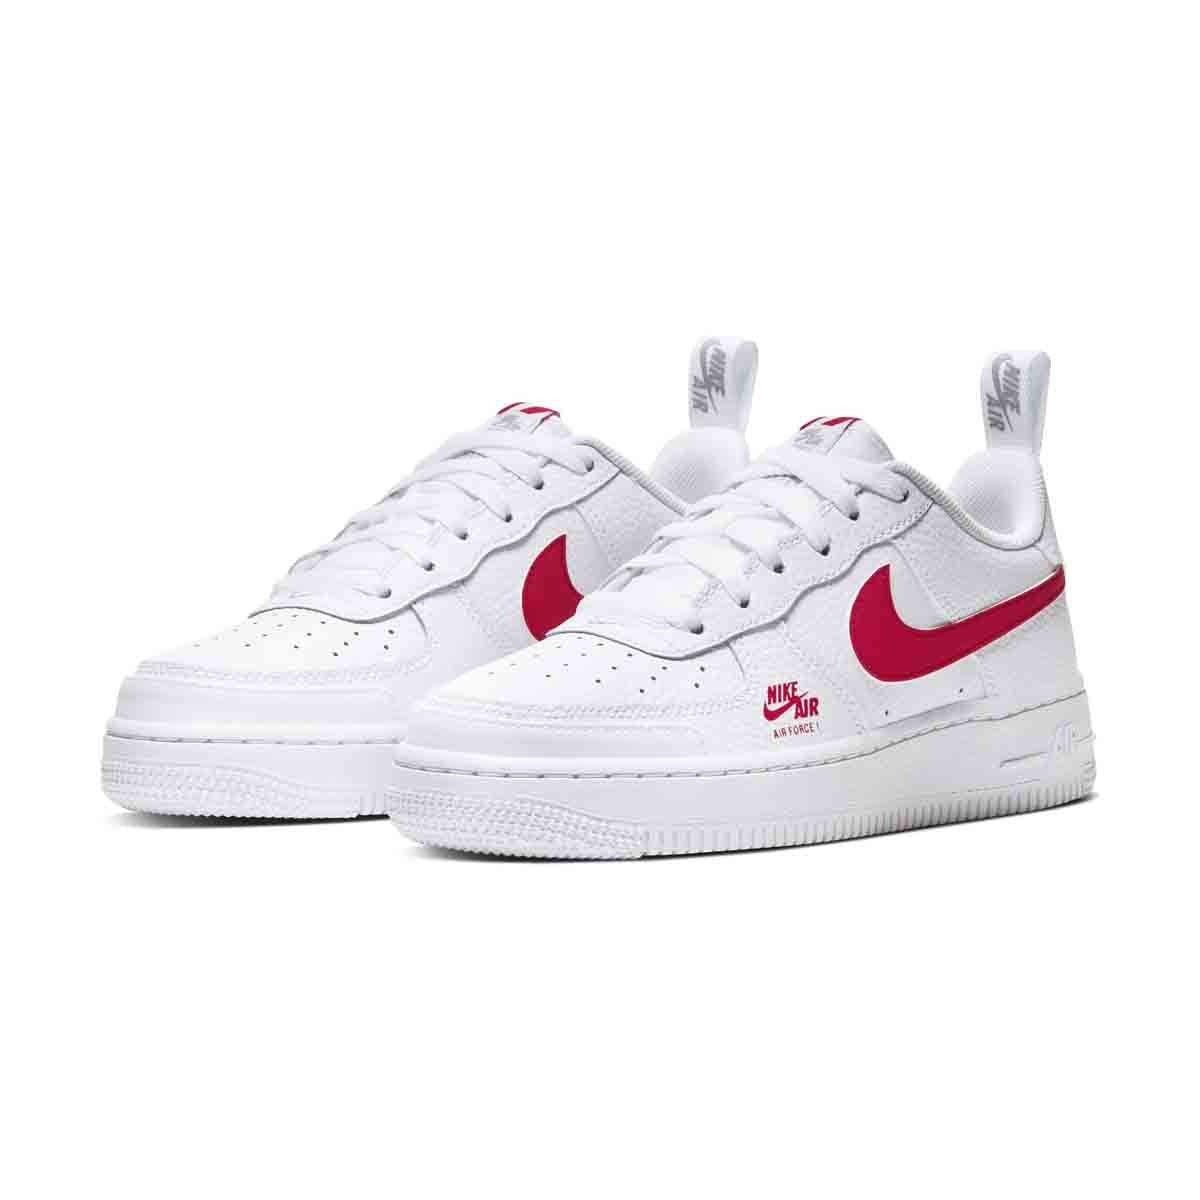 Big Kids Nike Air Force 1